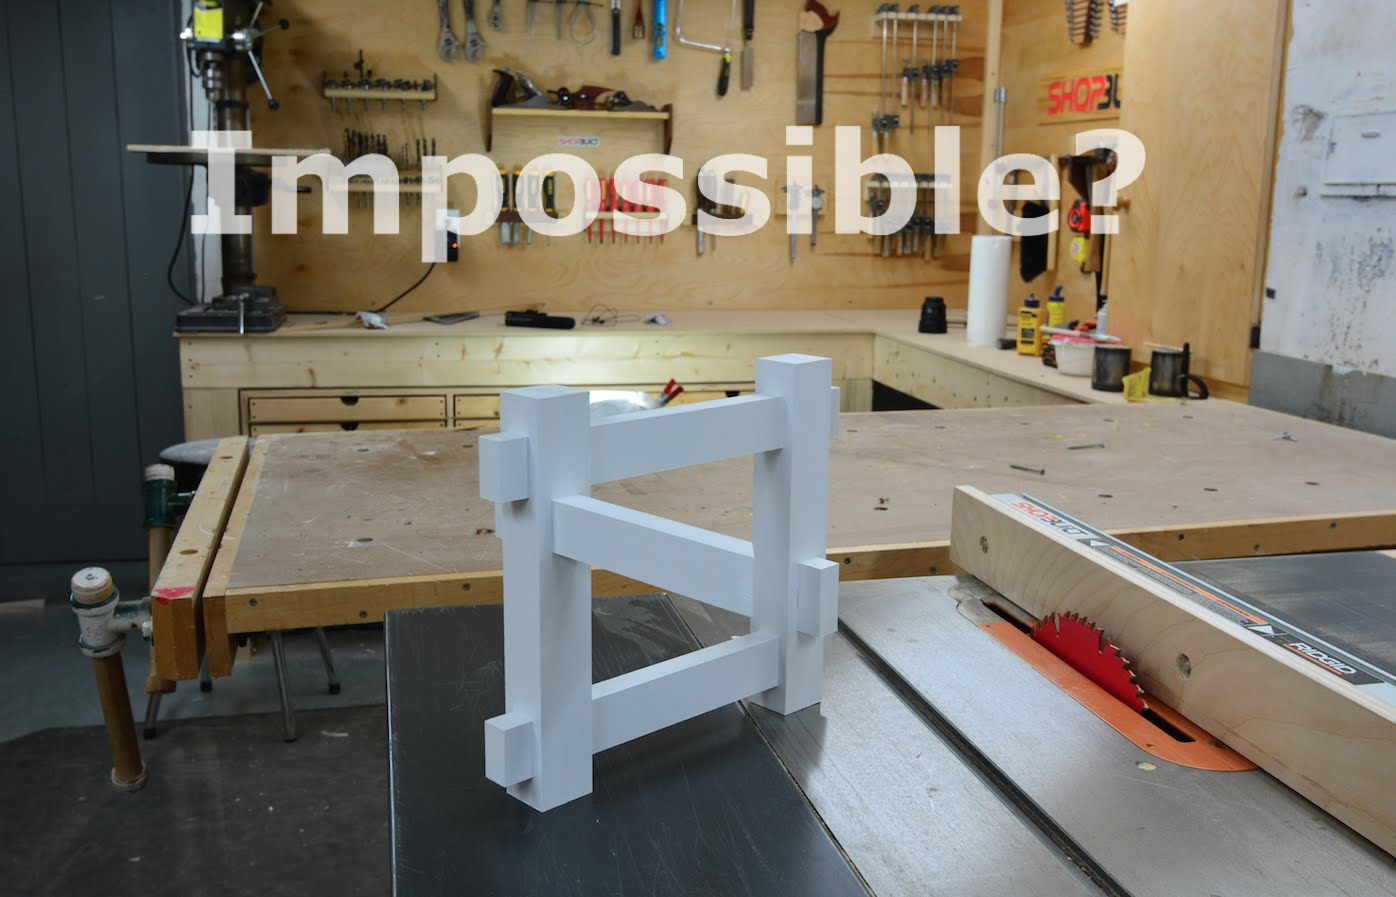 impossible optical illusion illusions build wood laughingsquid wooden woodworking